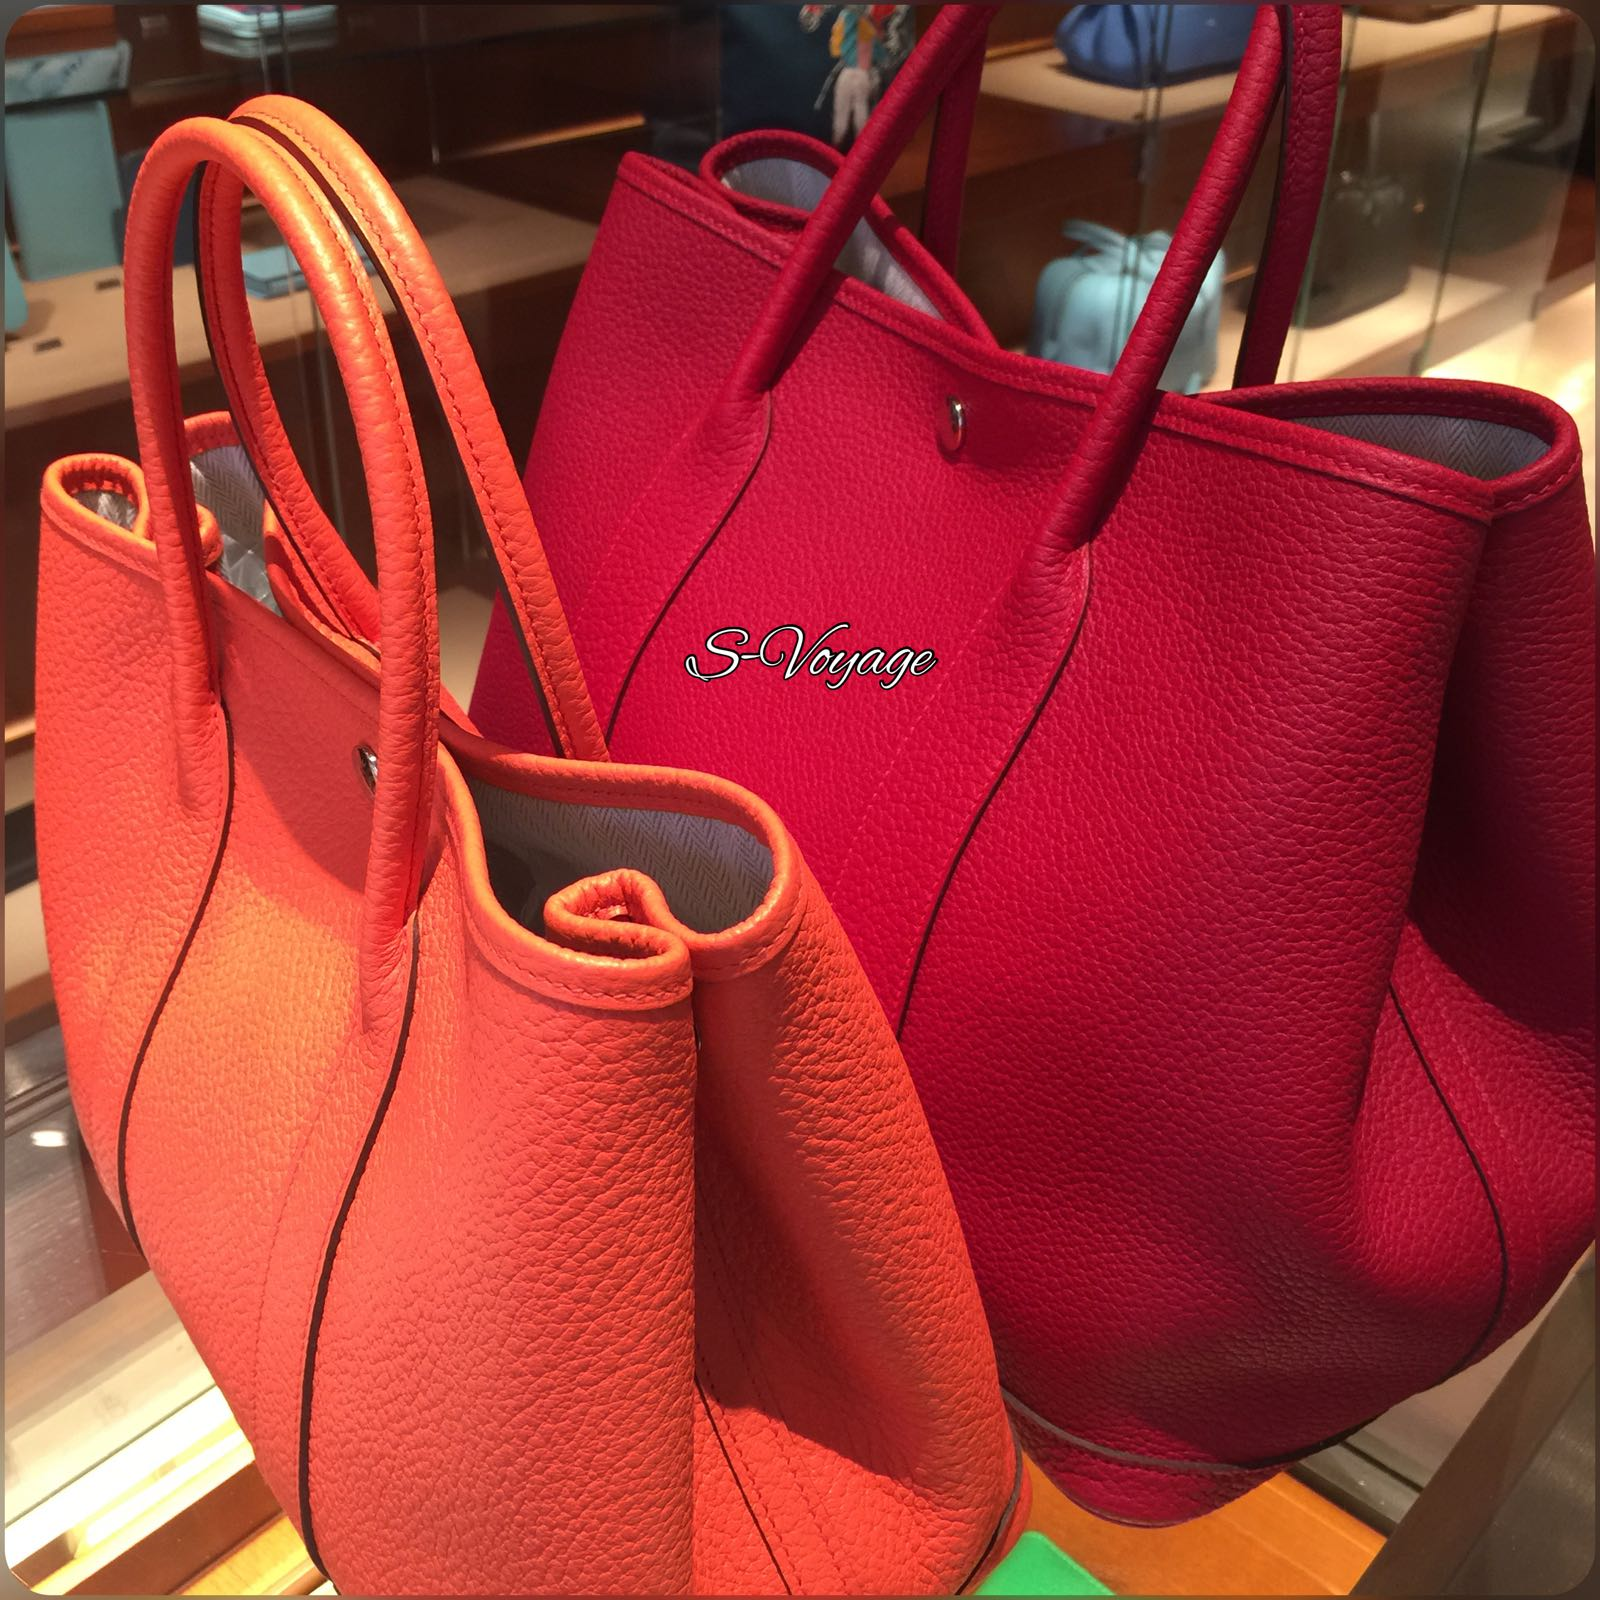 buy hermes birkin bag - Always Authentic @ S-Voyage